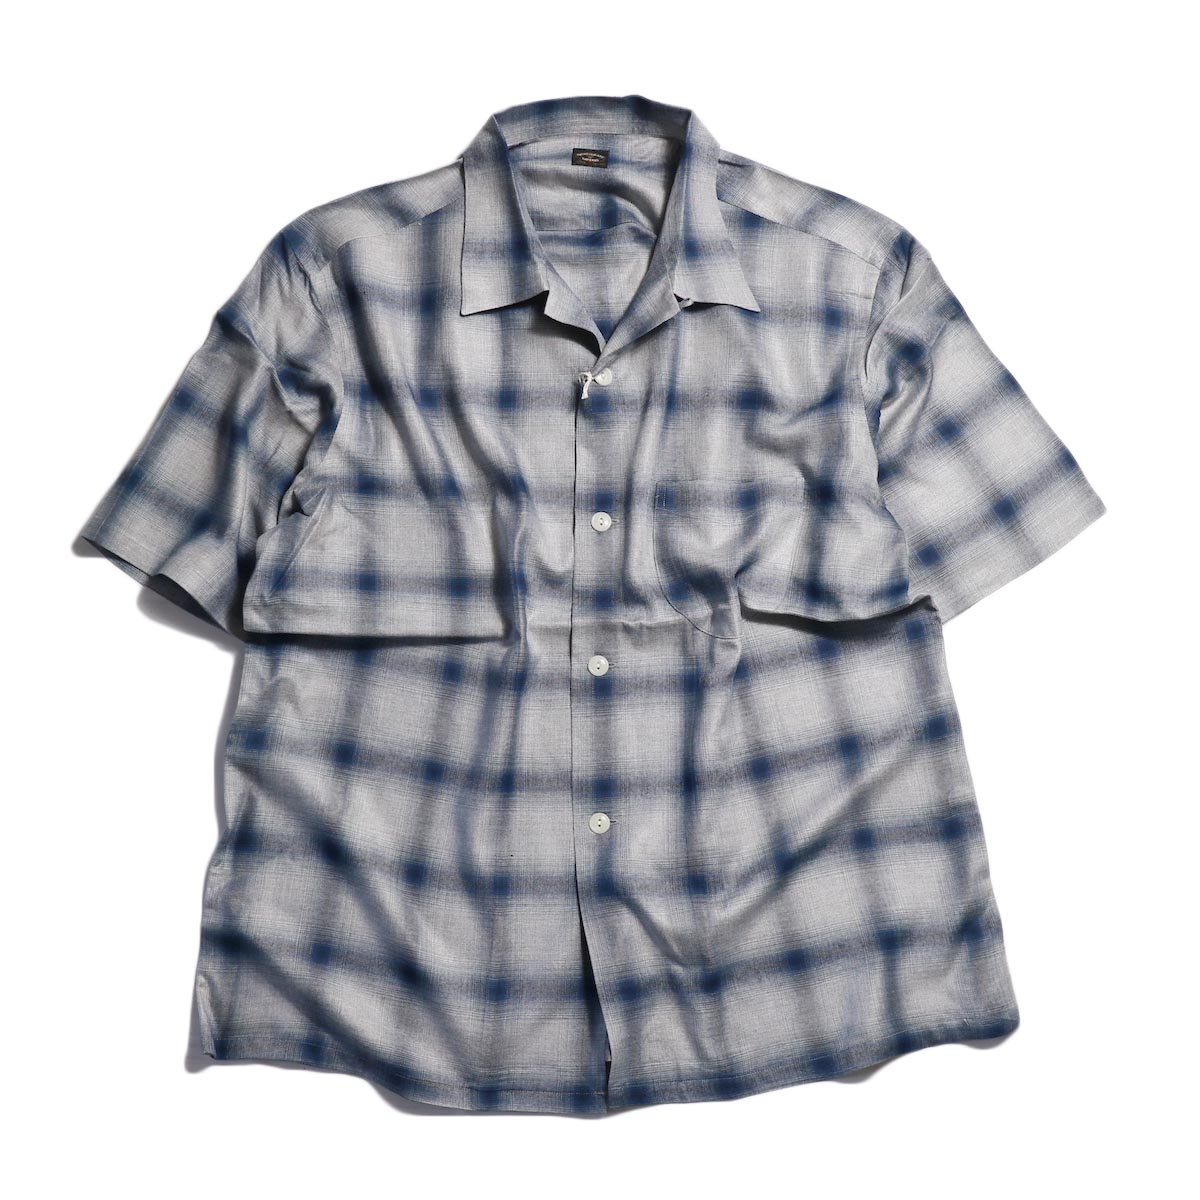 TOWN CRAFT / OMBLE OPEN S/S SHIRTS -Navy